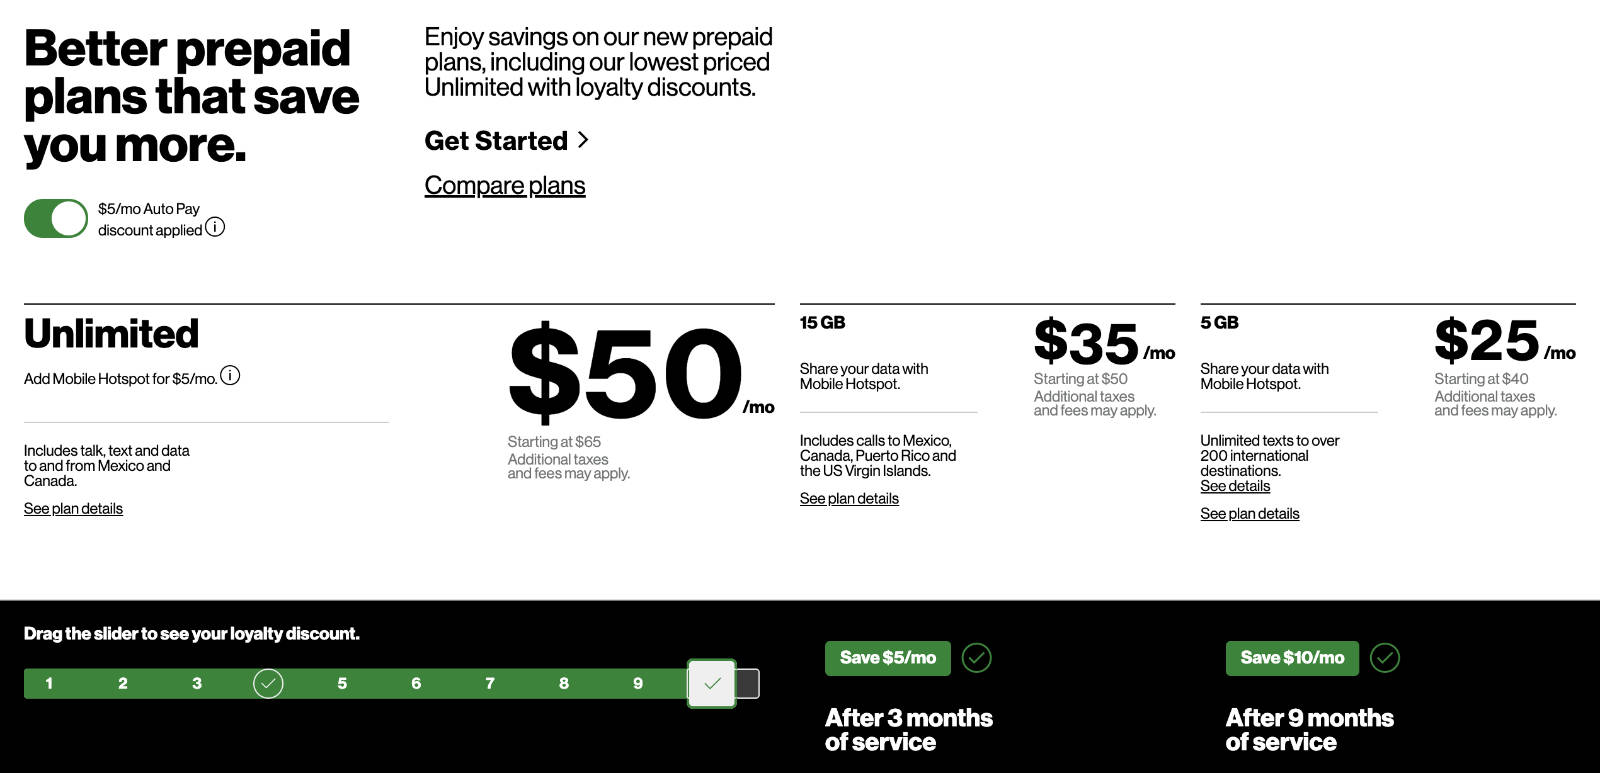 Verizon's new loyalty discount saves customers up to $10 per month after 9 months of service